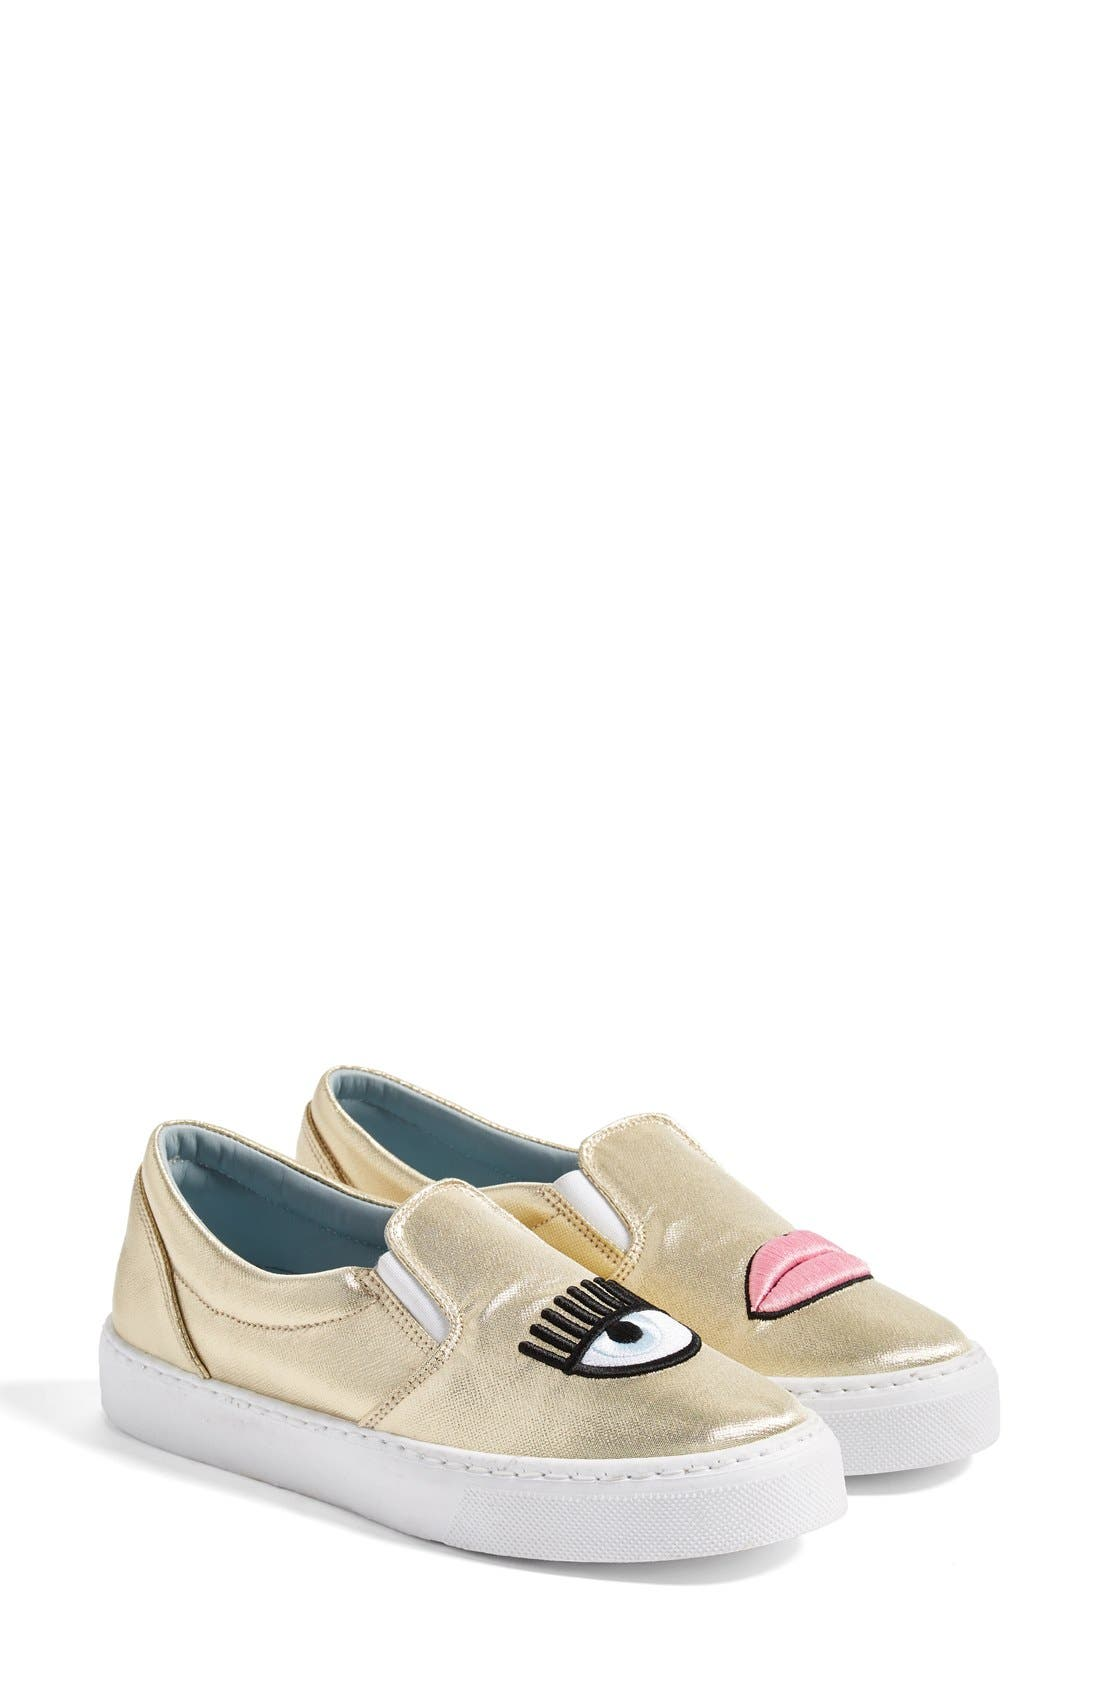 Alternate Image 2  - Chiara Ferragni Flirting Lips Slip-On Sneaker (Women)